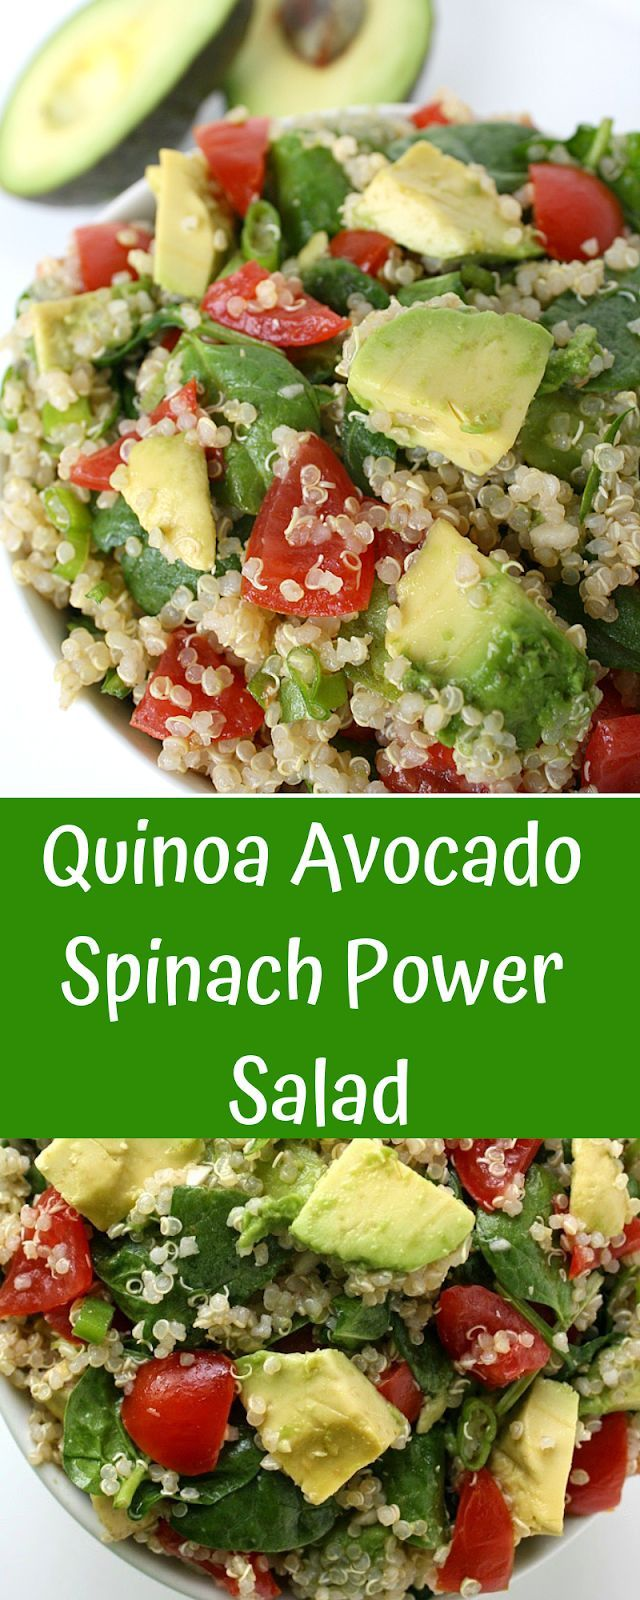 Quinoa Avocado Spinach Power Salad.  #health #fitness #naturalremedies #healthyliving #weightlosside...